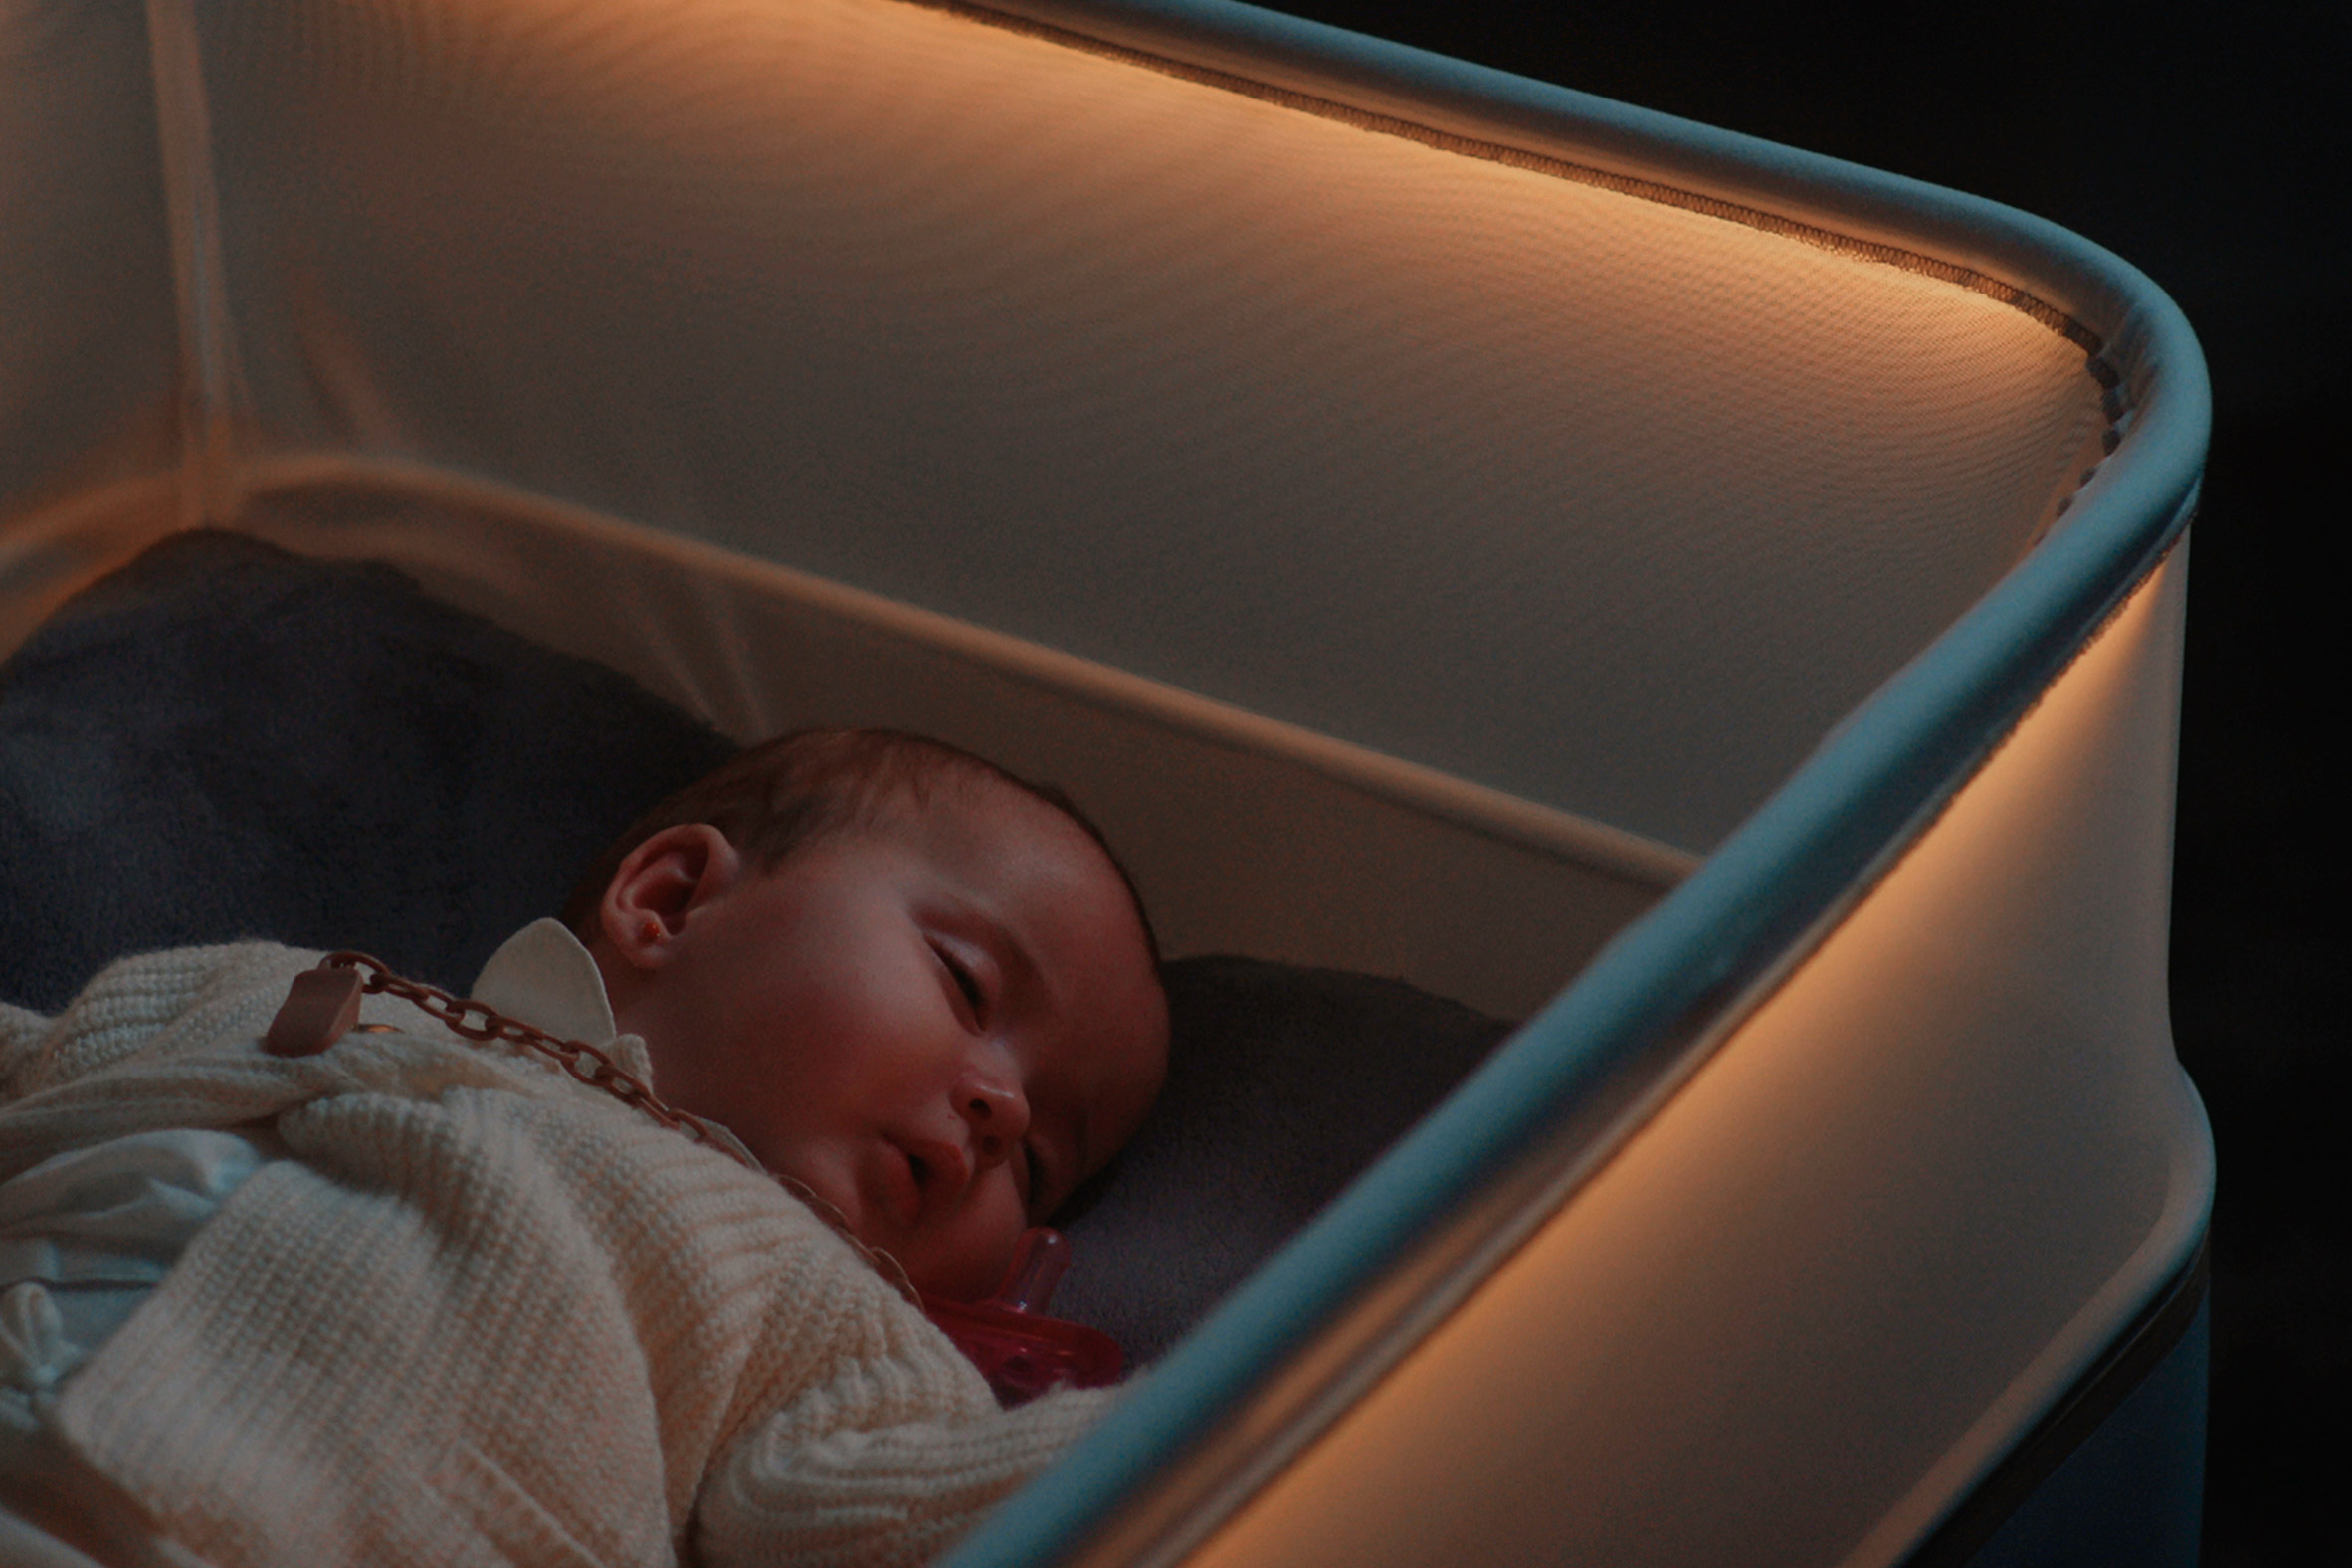 Ford's smart cot promises to recreate the feeling of being rocked to sleep in a car